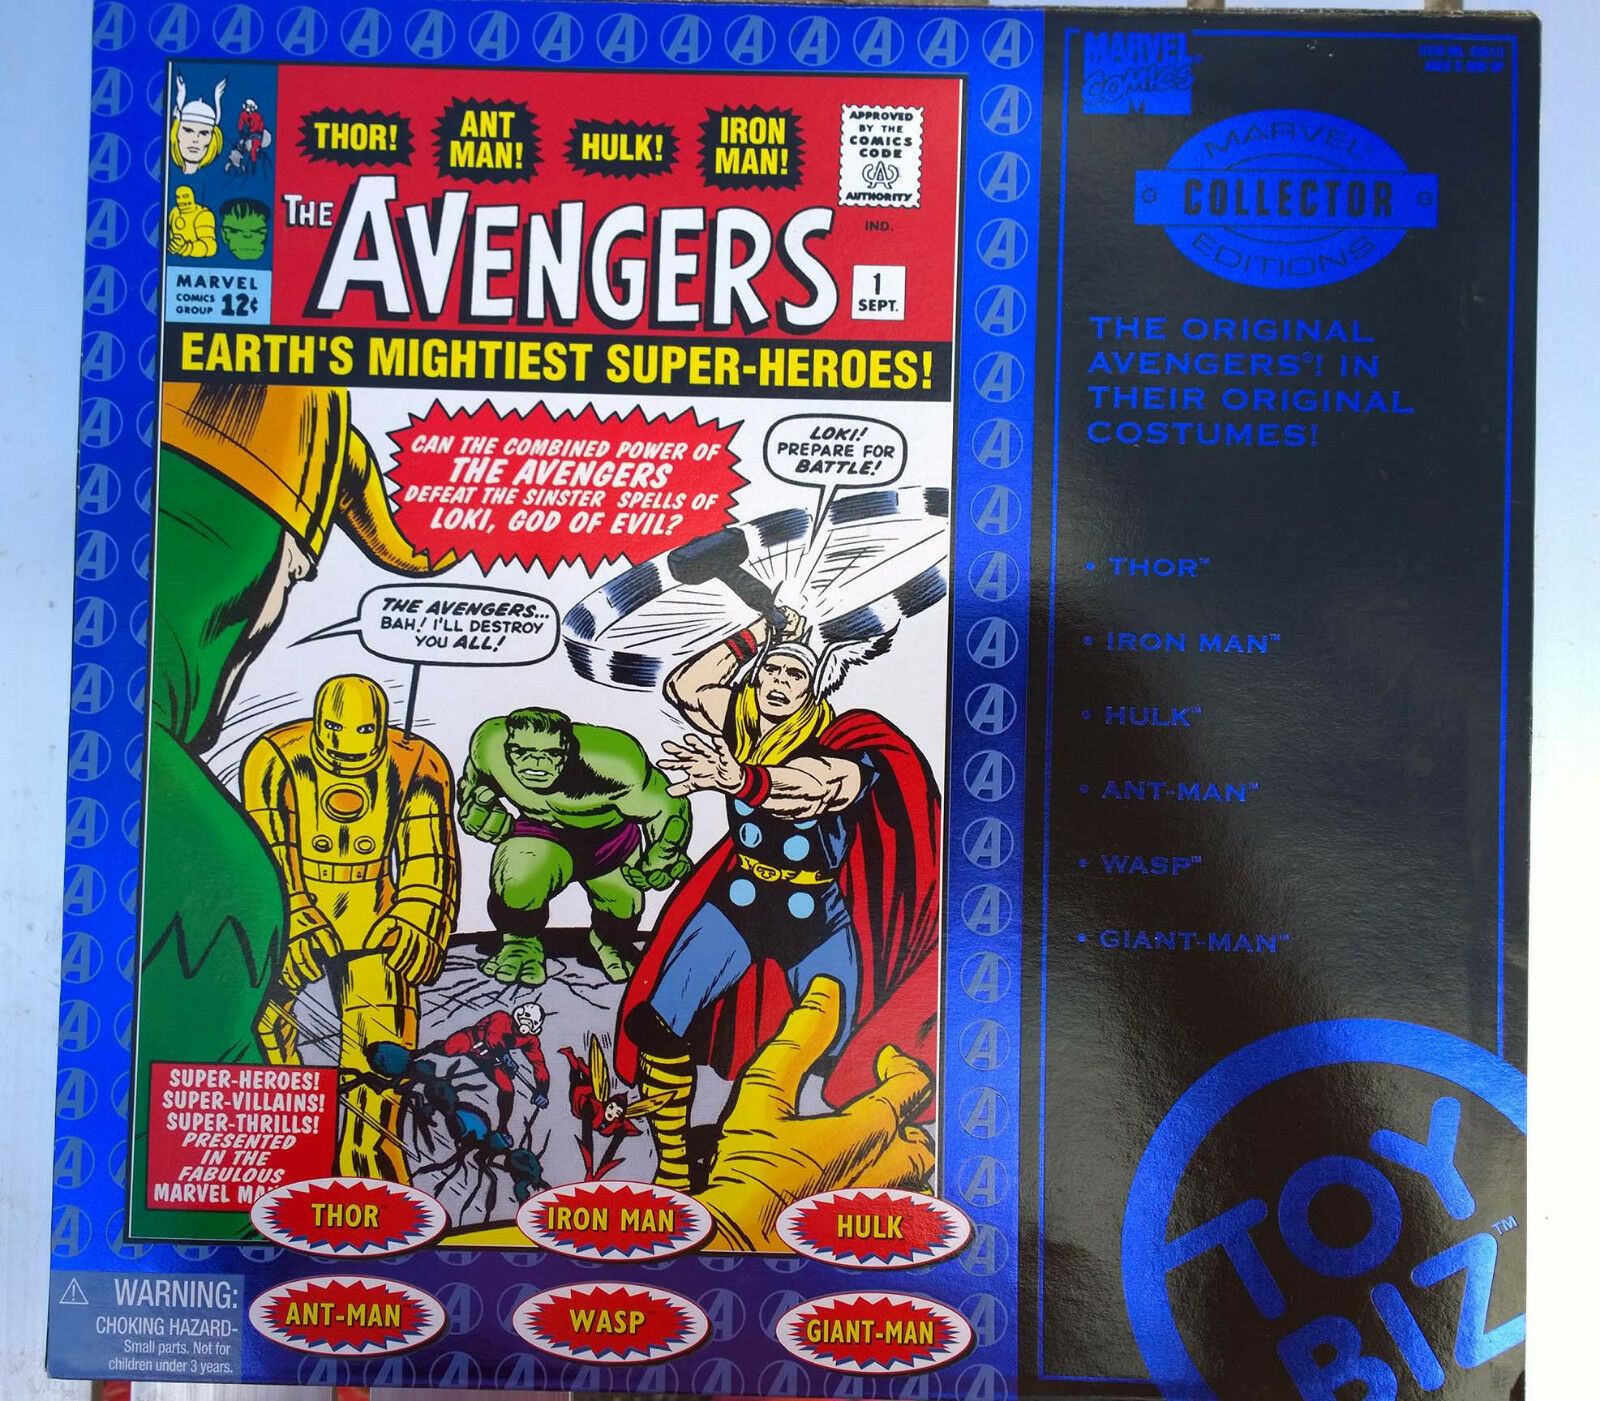 Toy Biz Marvel  Collector Edition - First Edition The Original Avengers Box Set